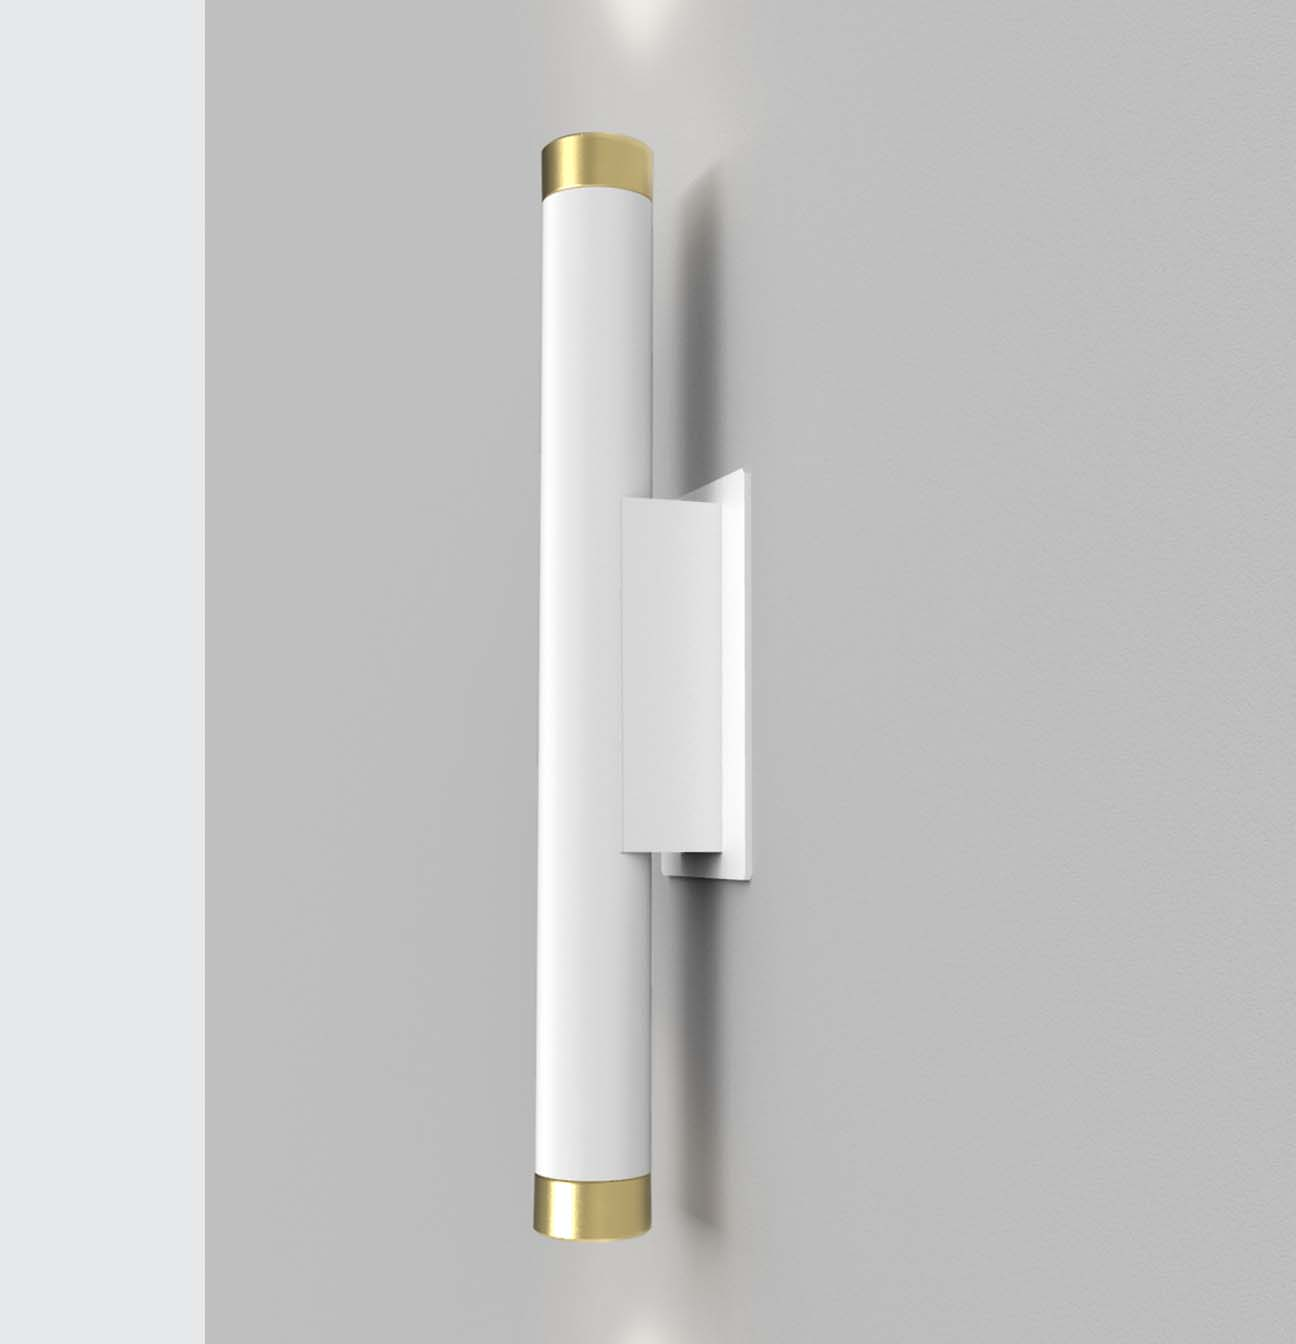 Scope_Sconce_Prouduct_Page_Image_08